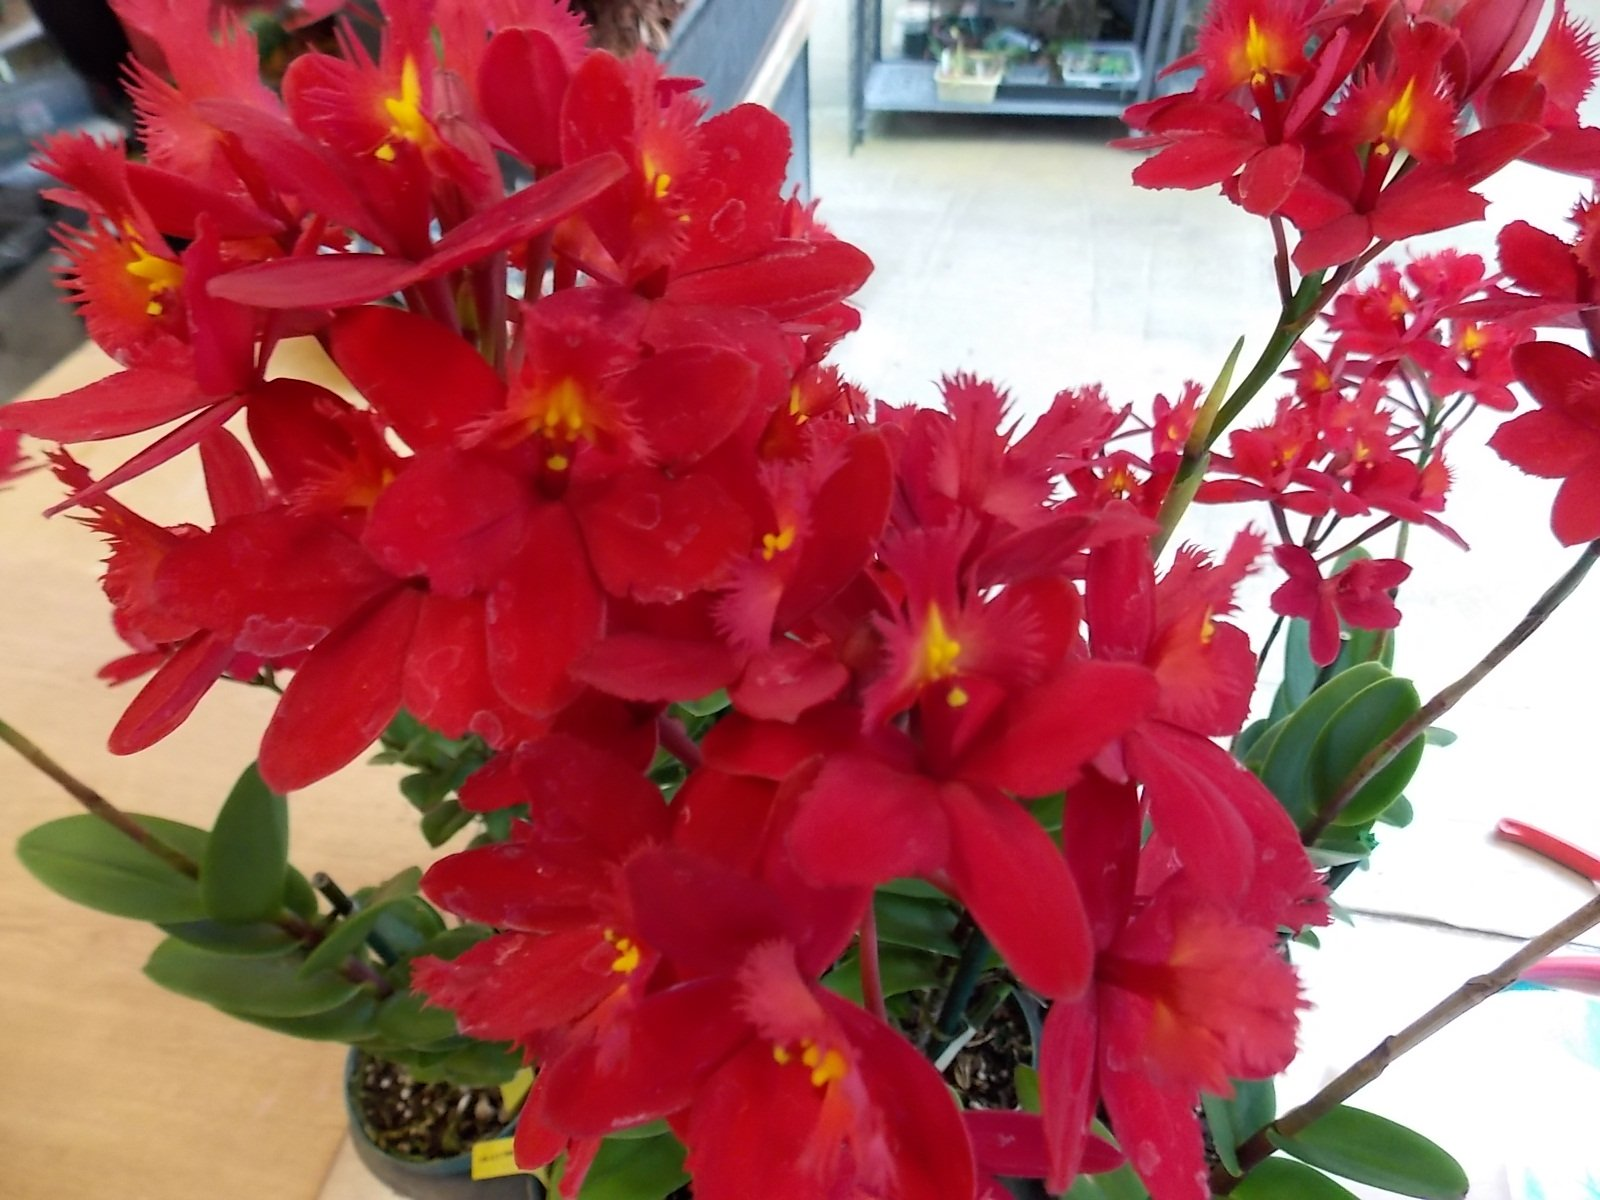 Kawamoto Orchid Nursery Epc. Cerina 'Nadia' NEW! Large Red! Exclusive! Collector's! Orchid Plant by Kawamoto Orchid Nursery (Image #1)